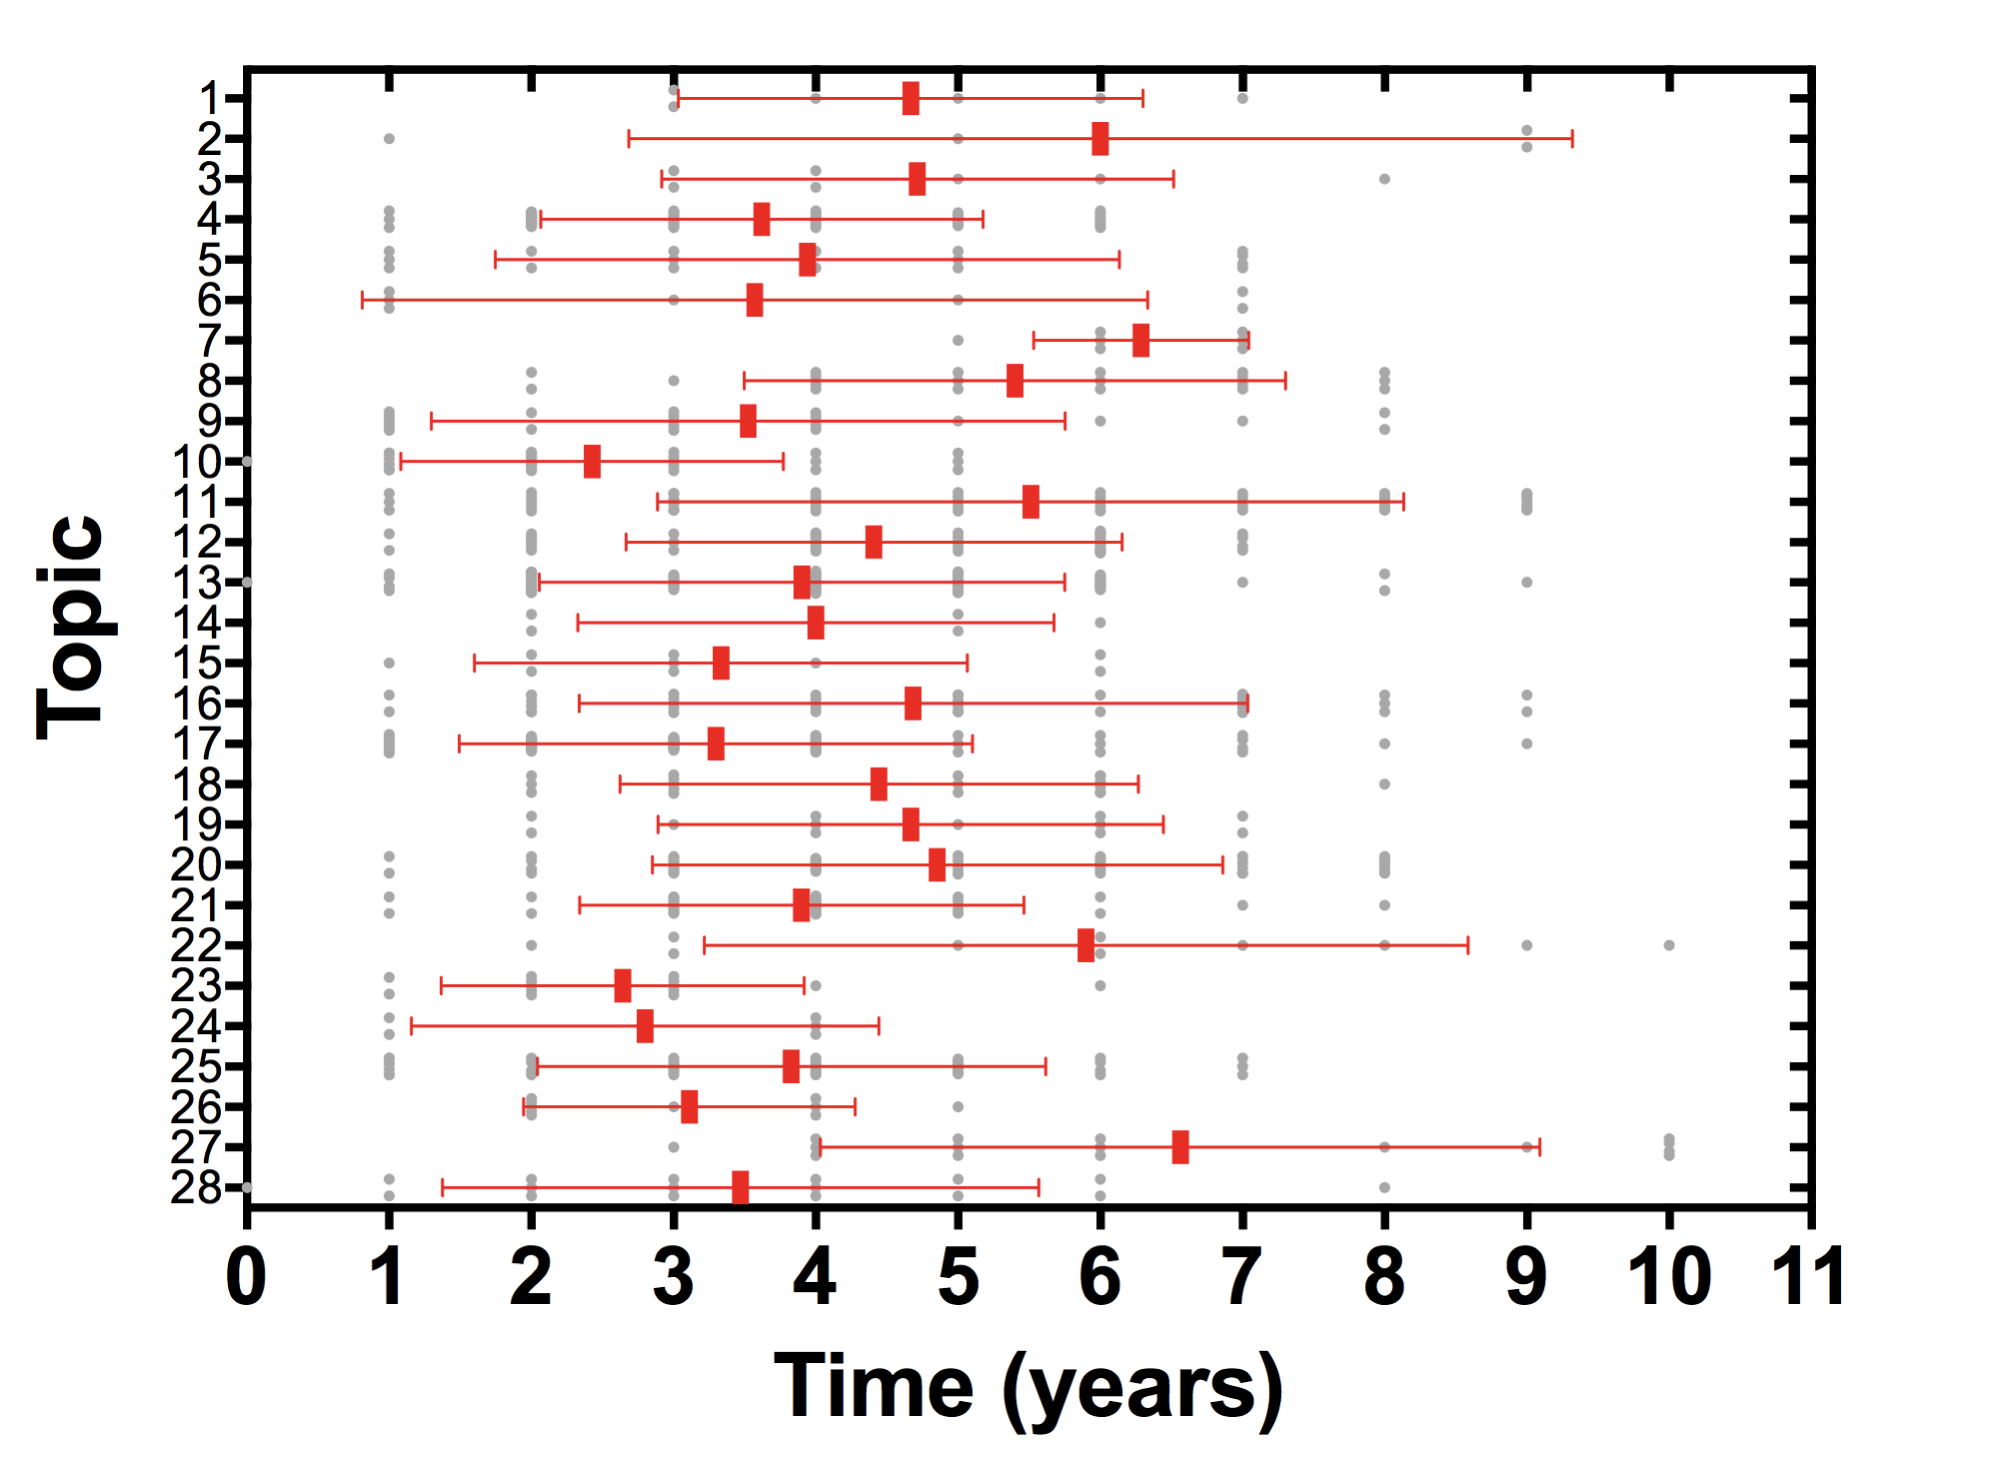 Time from primary study publication to incorporation in systematic review.